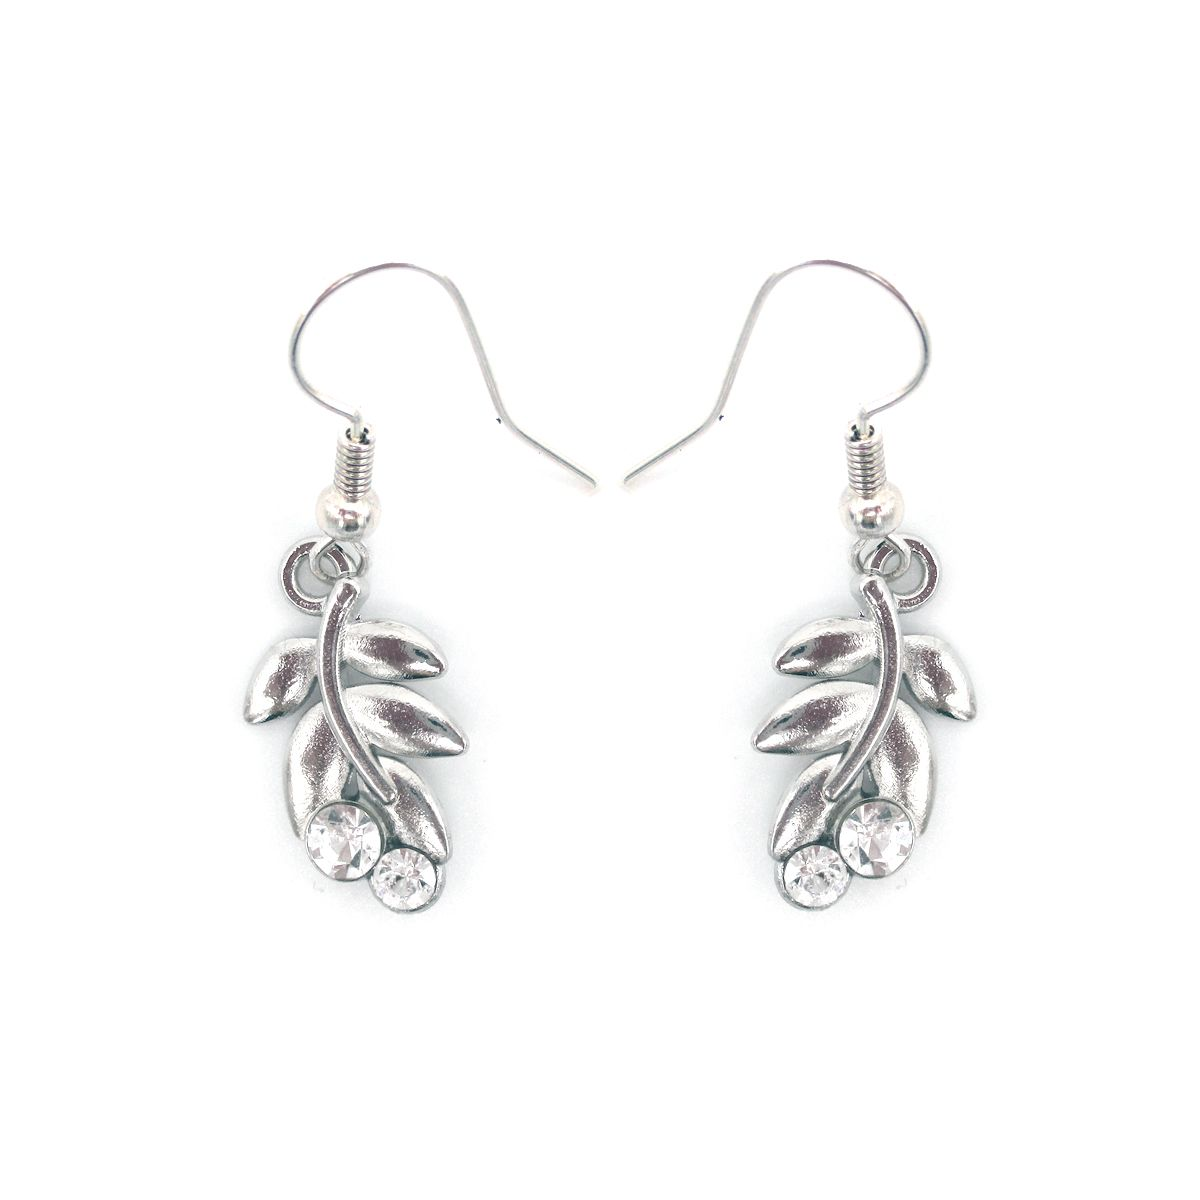 Helen crystal leaf earrings